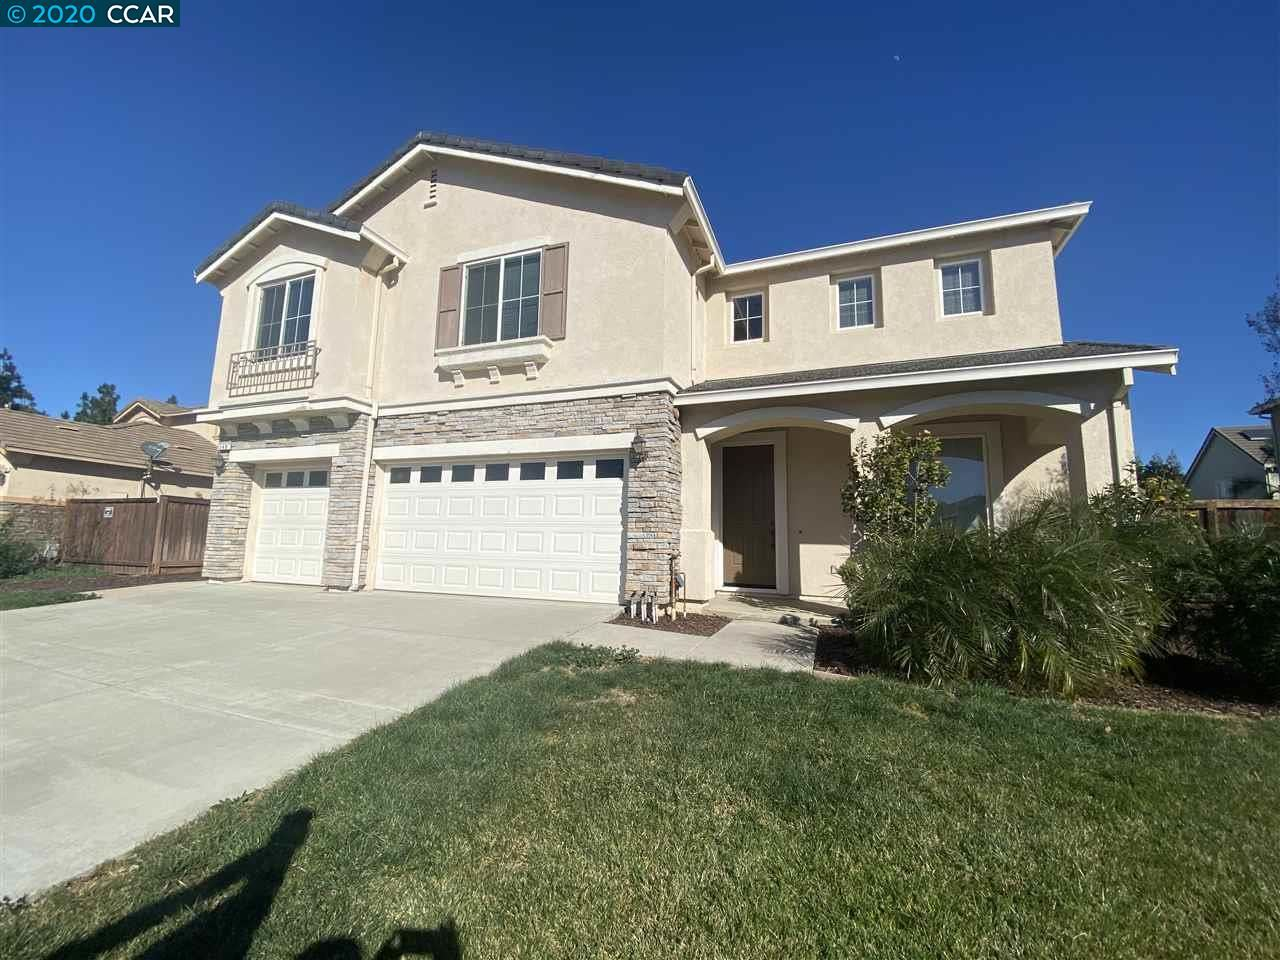 Photo for 140 FAHMY ST, BRENTWOOD, CA 94513-4014 (MLS # 40900168)